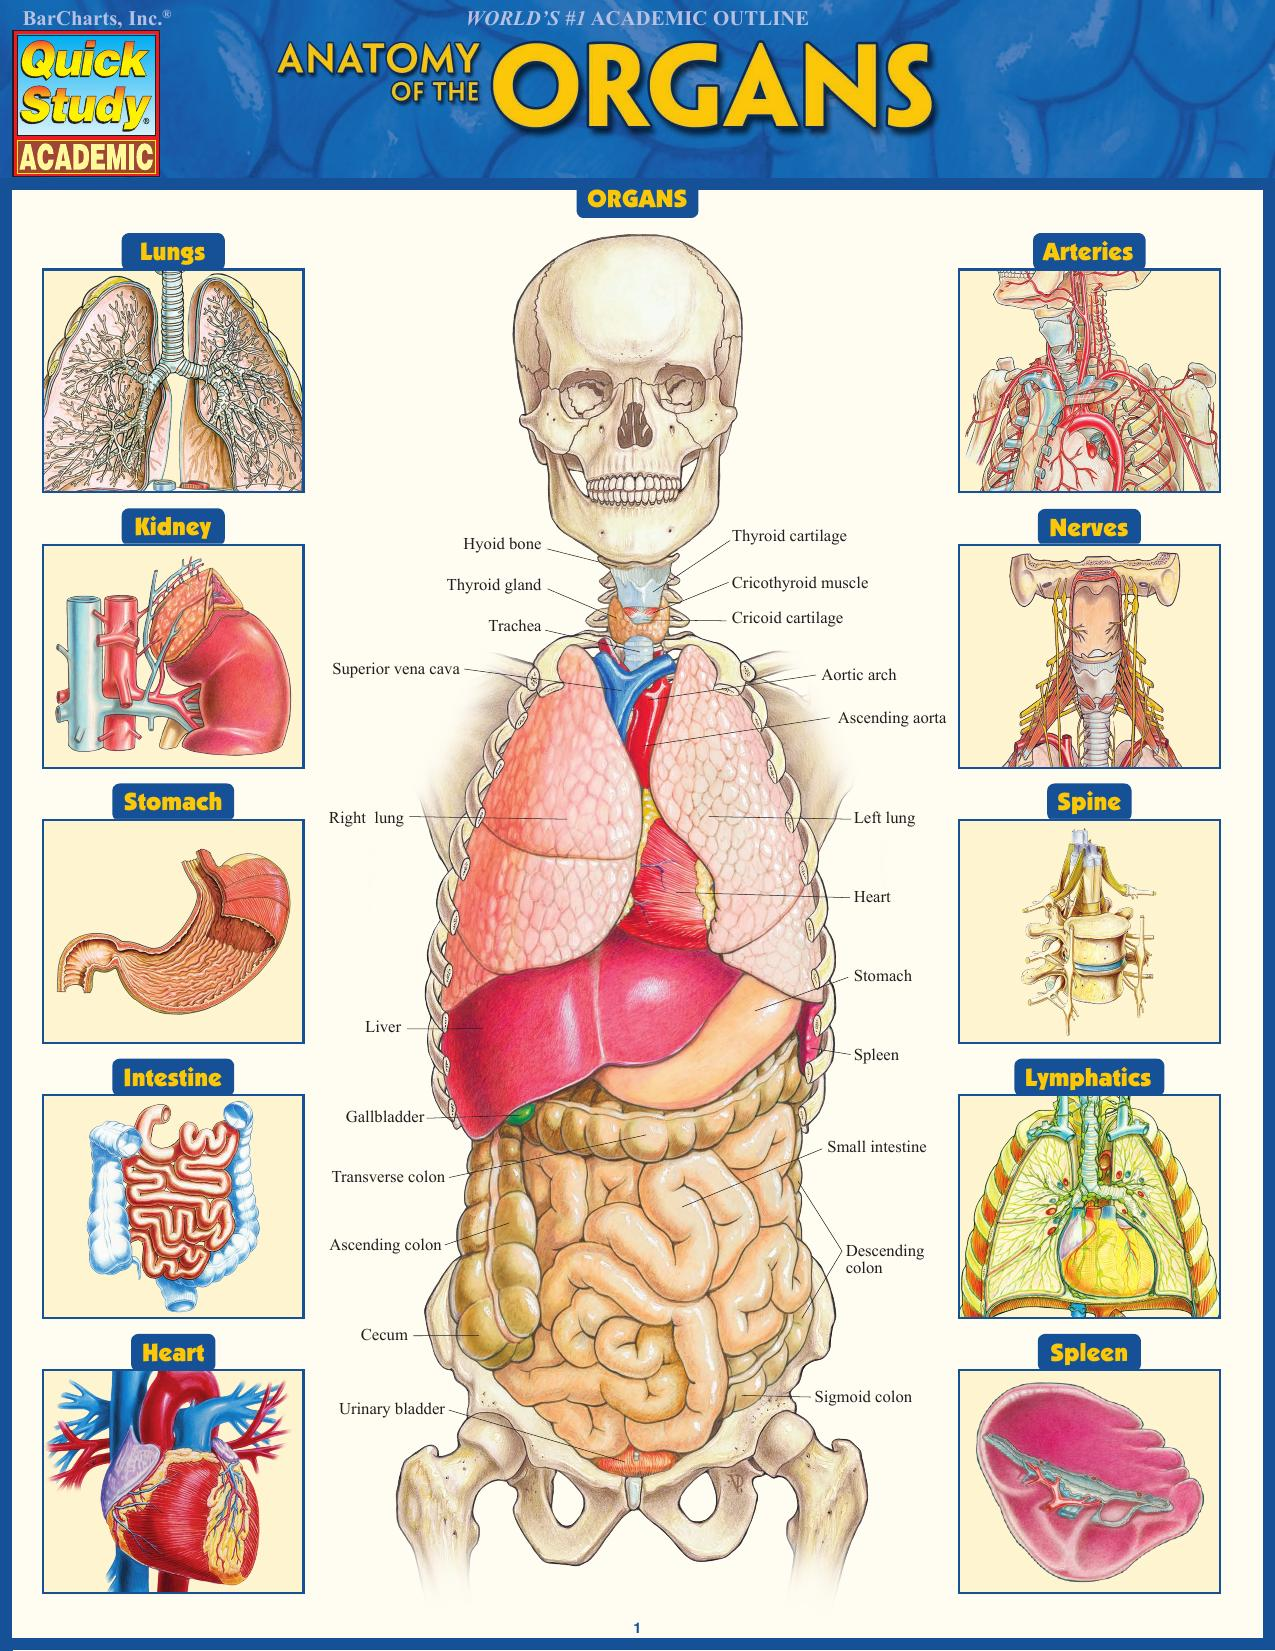 Anatomy Of The Organs Quick Study Academic Medical